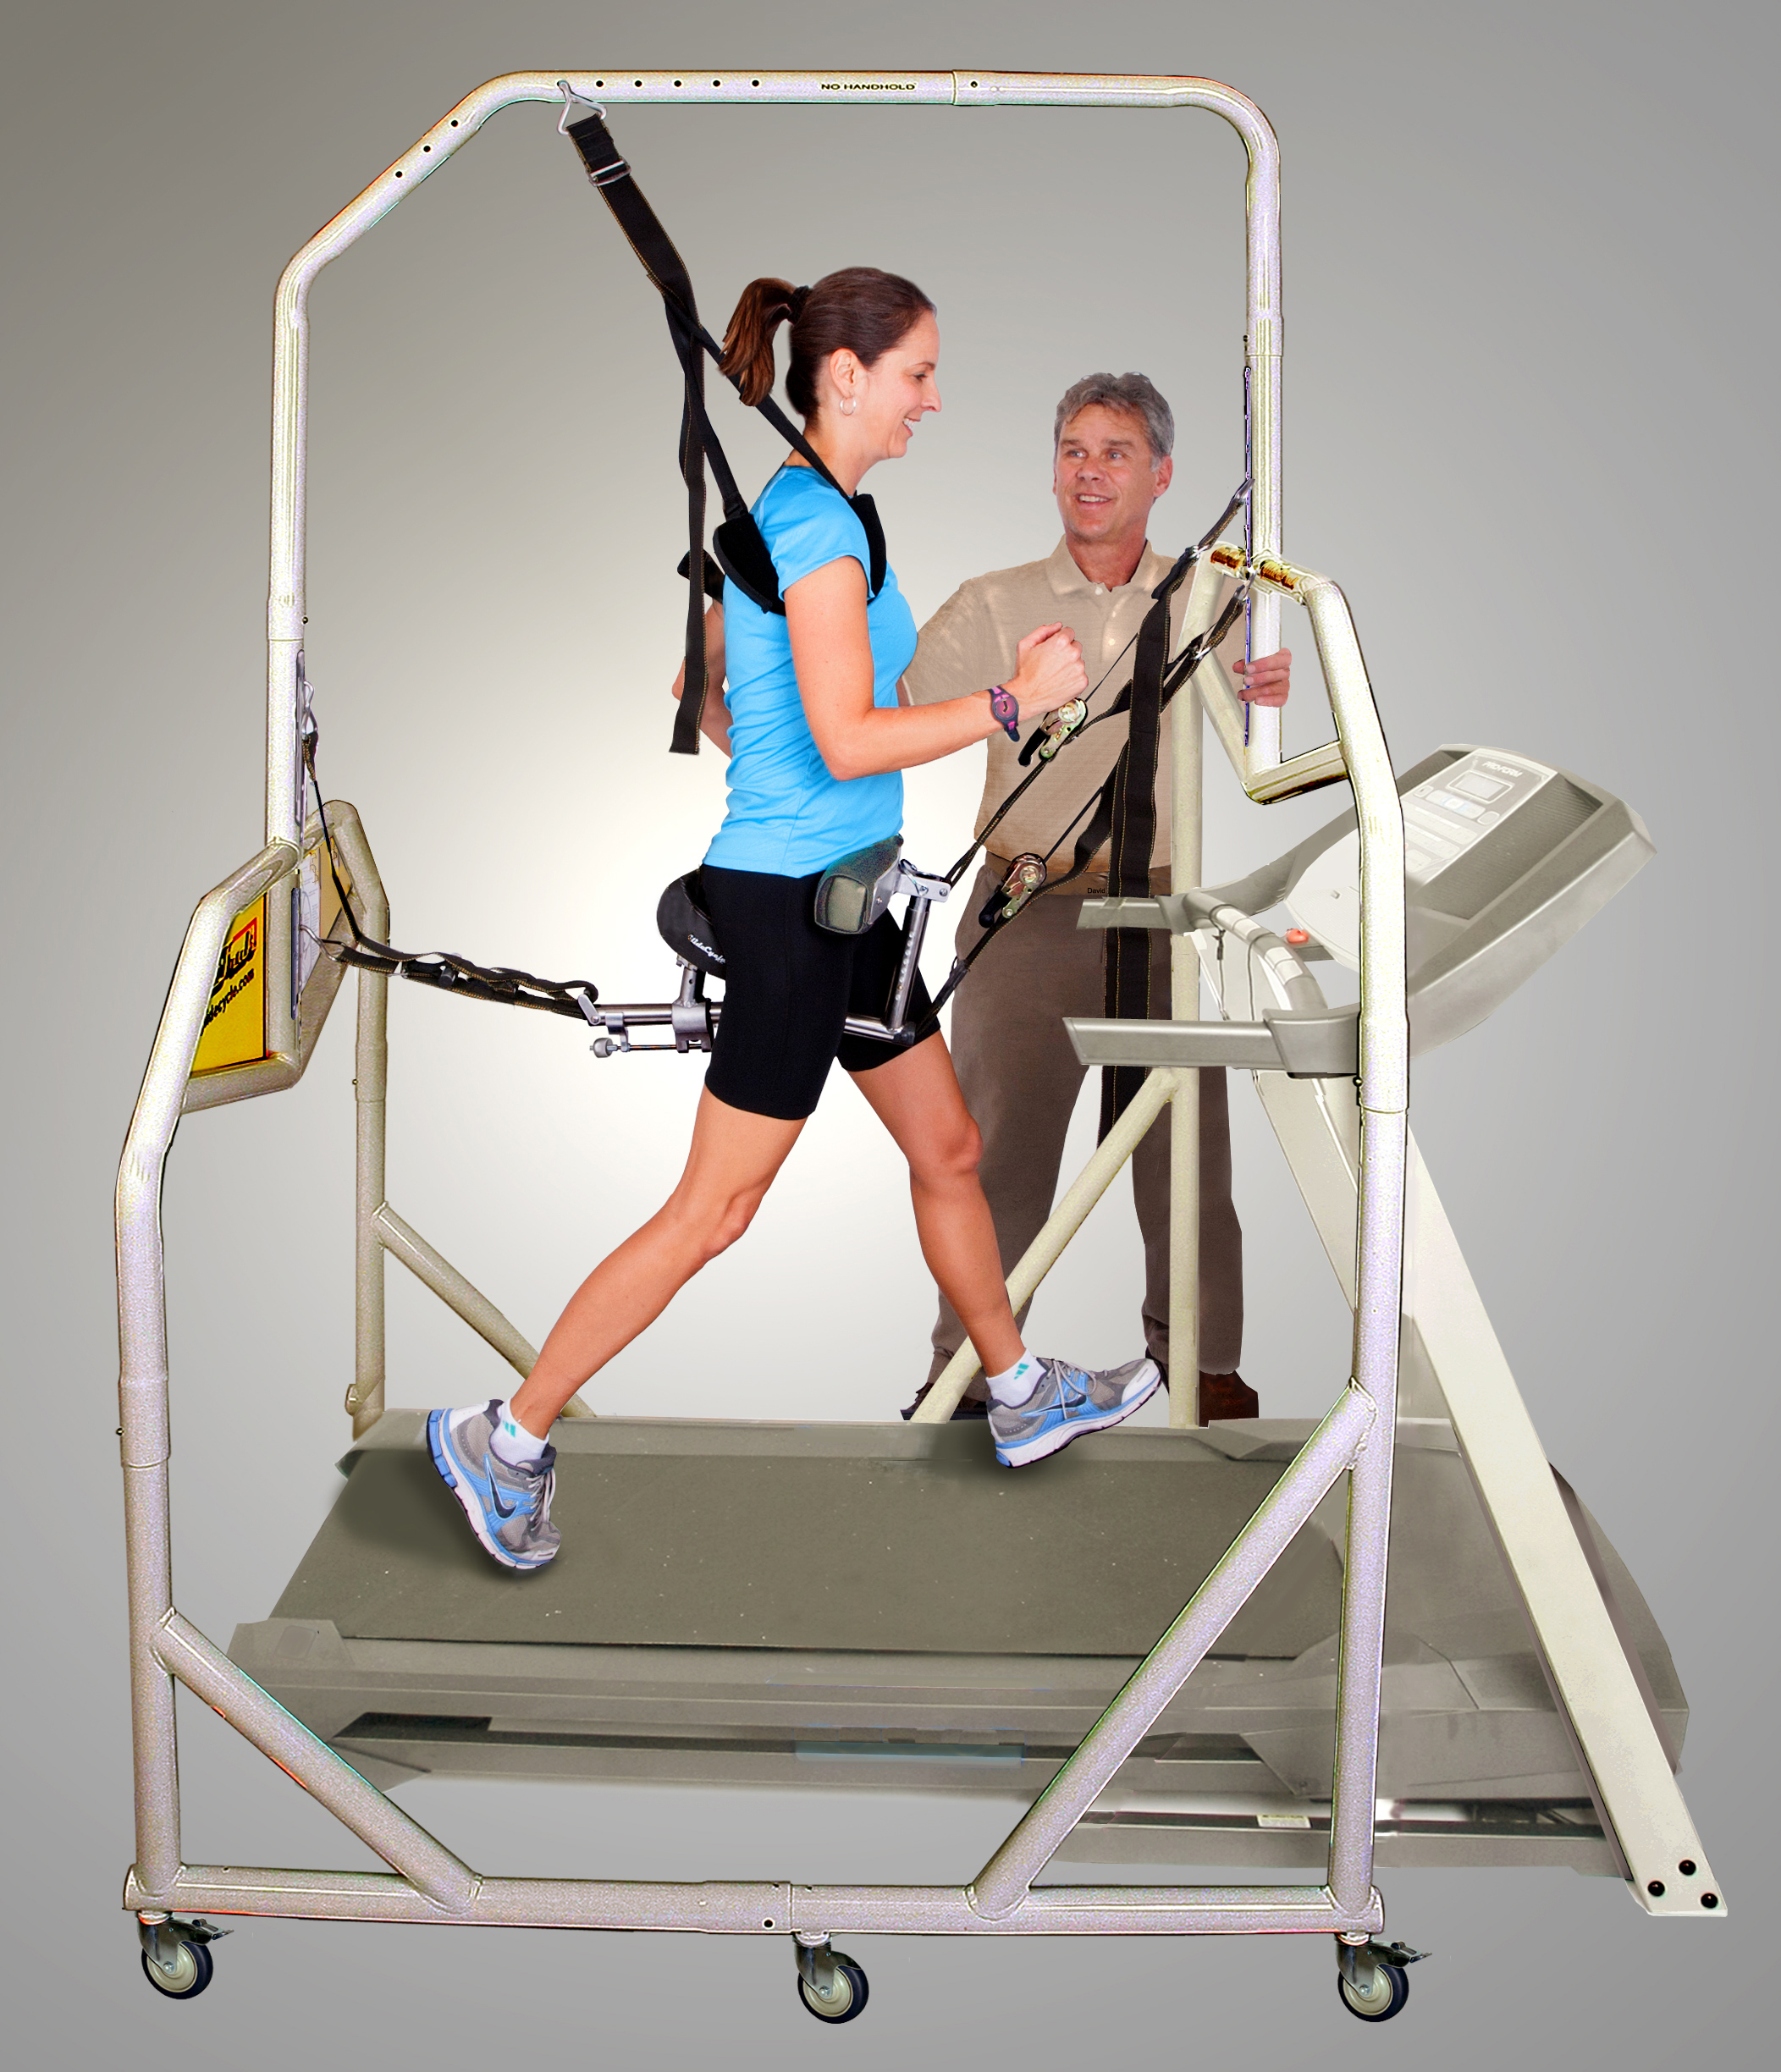 Physical Therapy Treadmill Support Harness